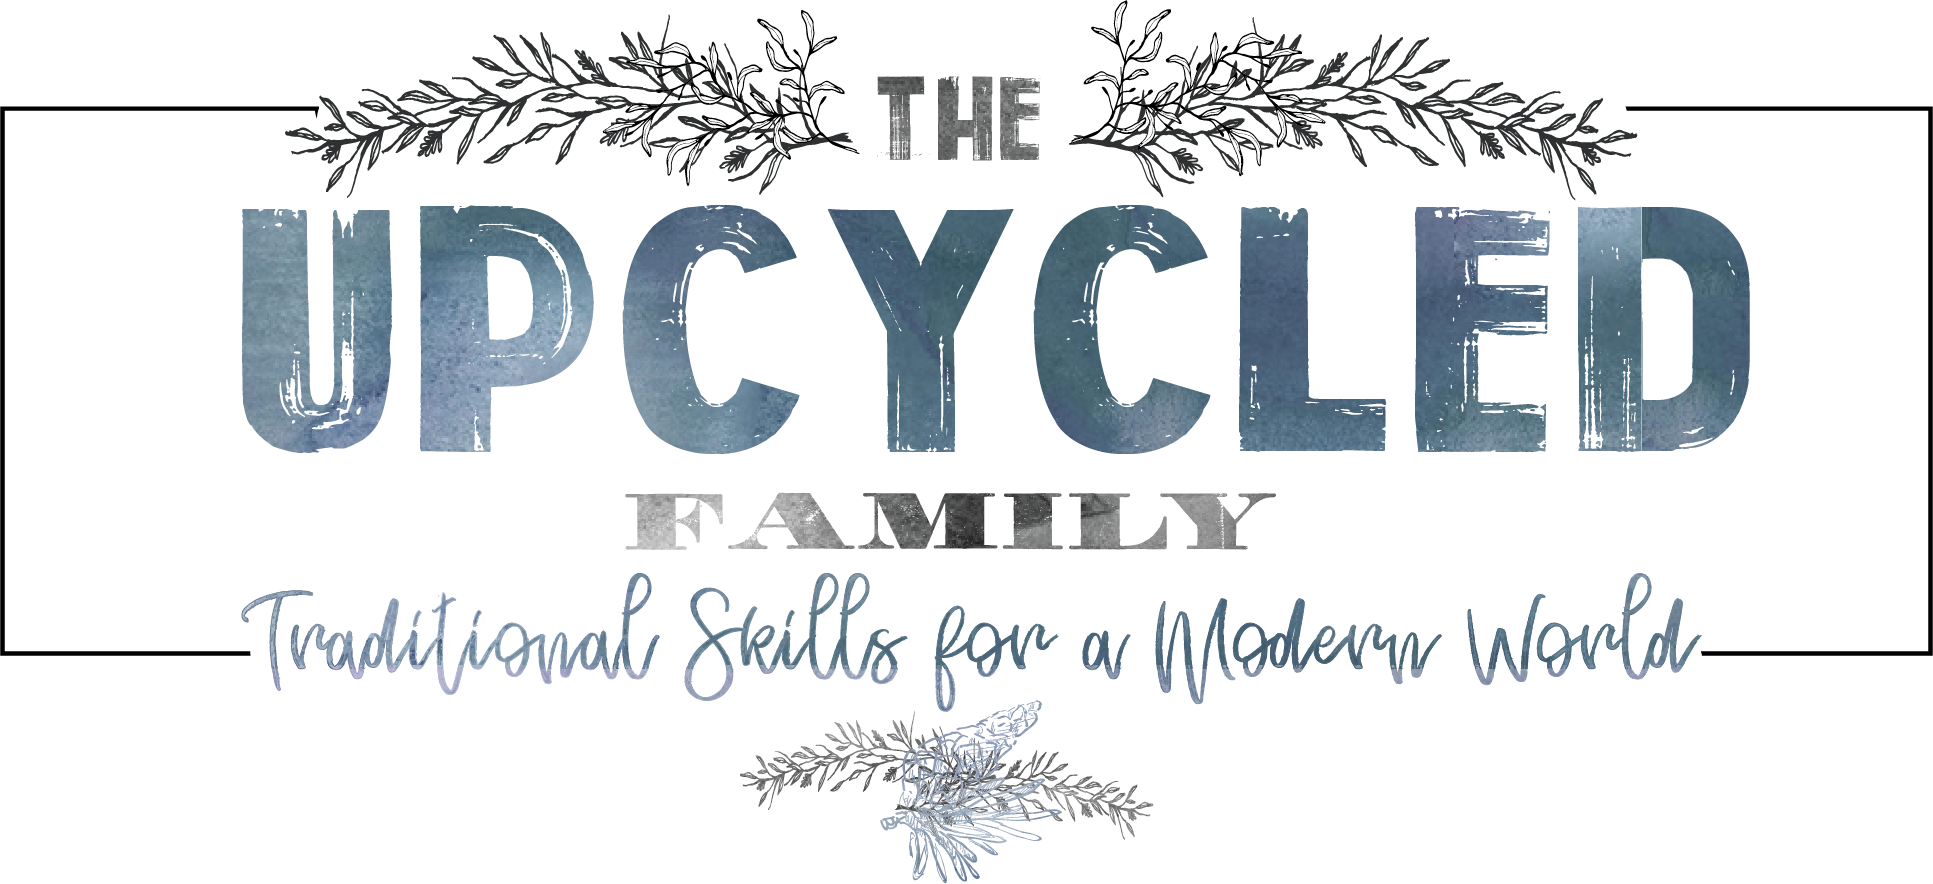 The Upcycled Family